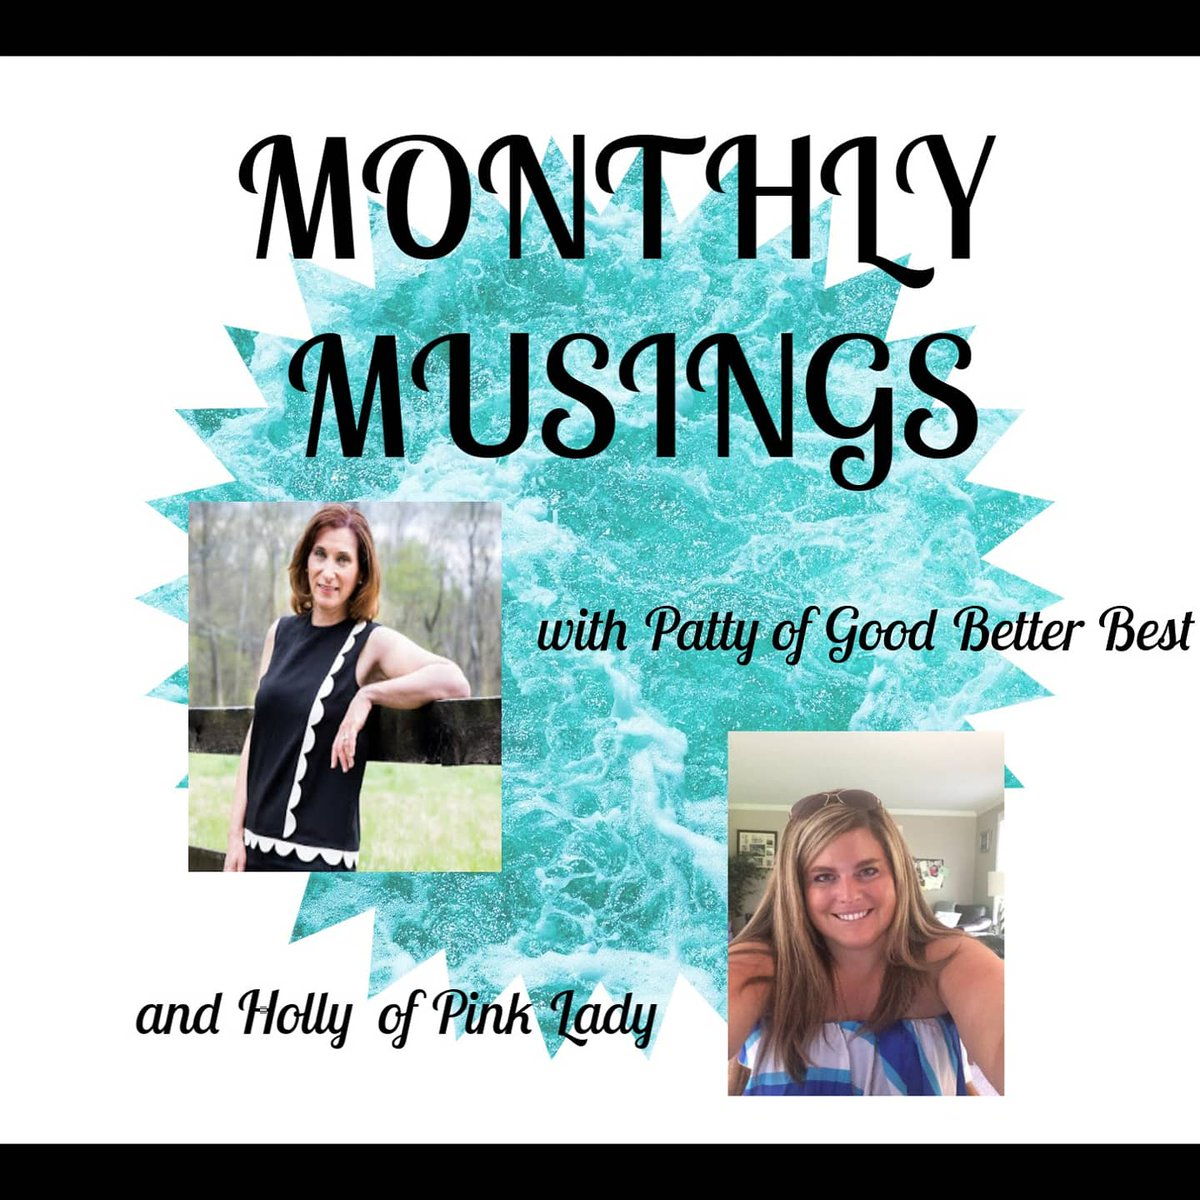 Excited to launch our new link up on Thursday Monthly Musings with Holly and Patty. Talking #Love on Thursday. Topic questions will be posted tomorrow. #monthlymusings #blog #LifestyleBlogger pic.twitter.com/hCsn2E2PcN